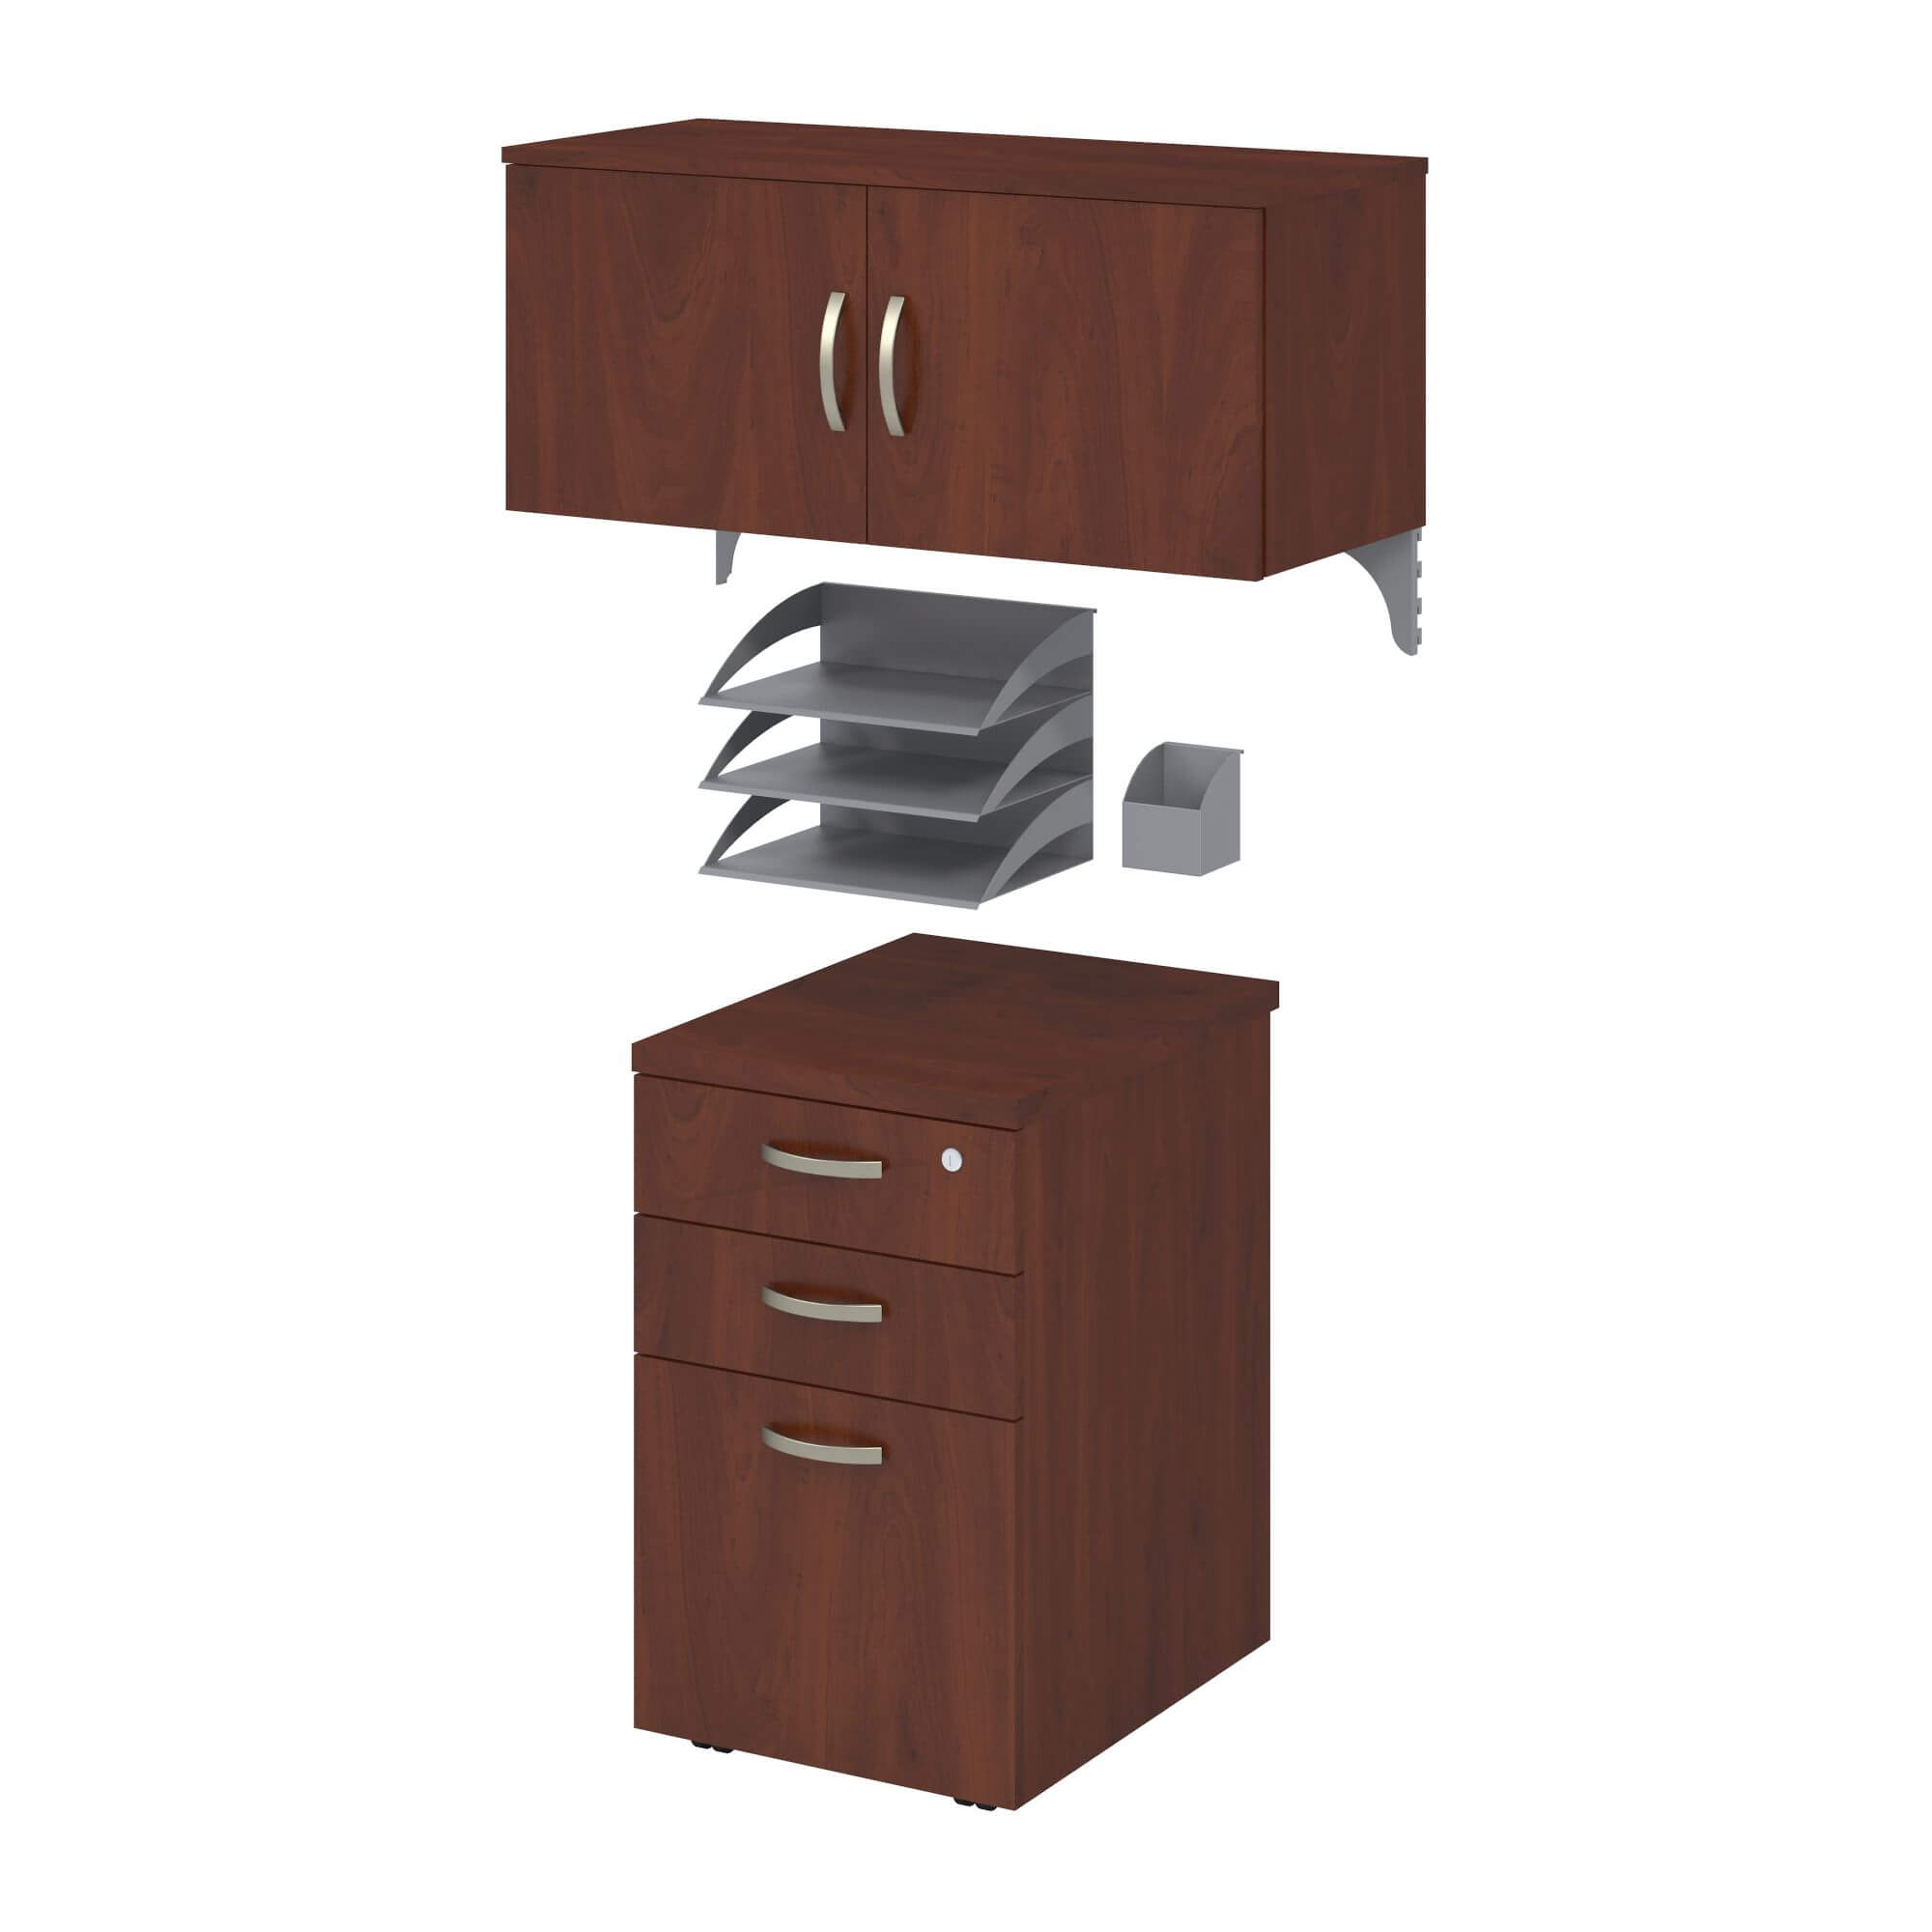 cubical-storage-and-accessories-CUB-WC36490-03K-FBB.jpg